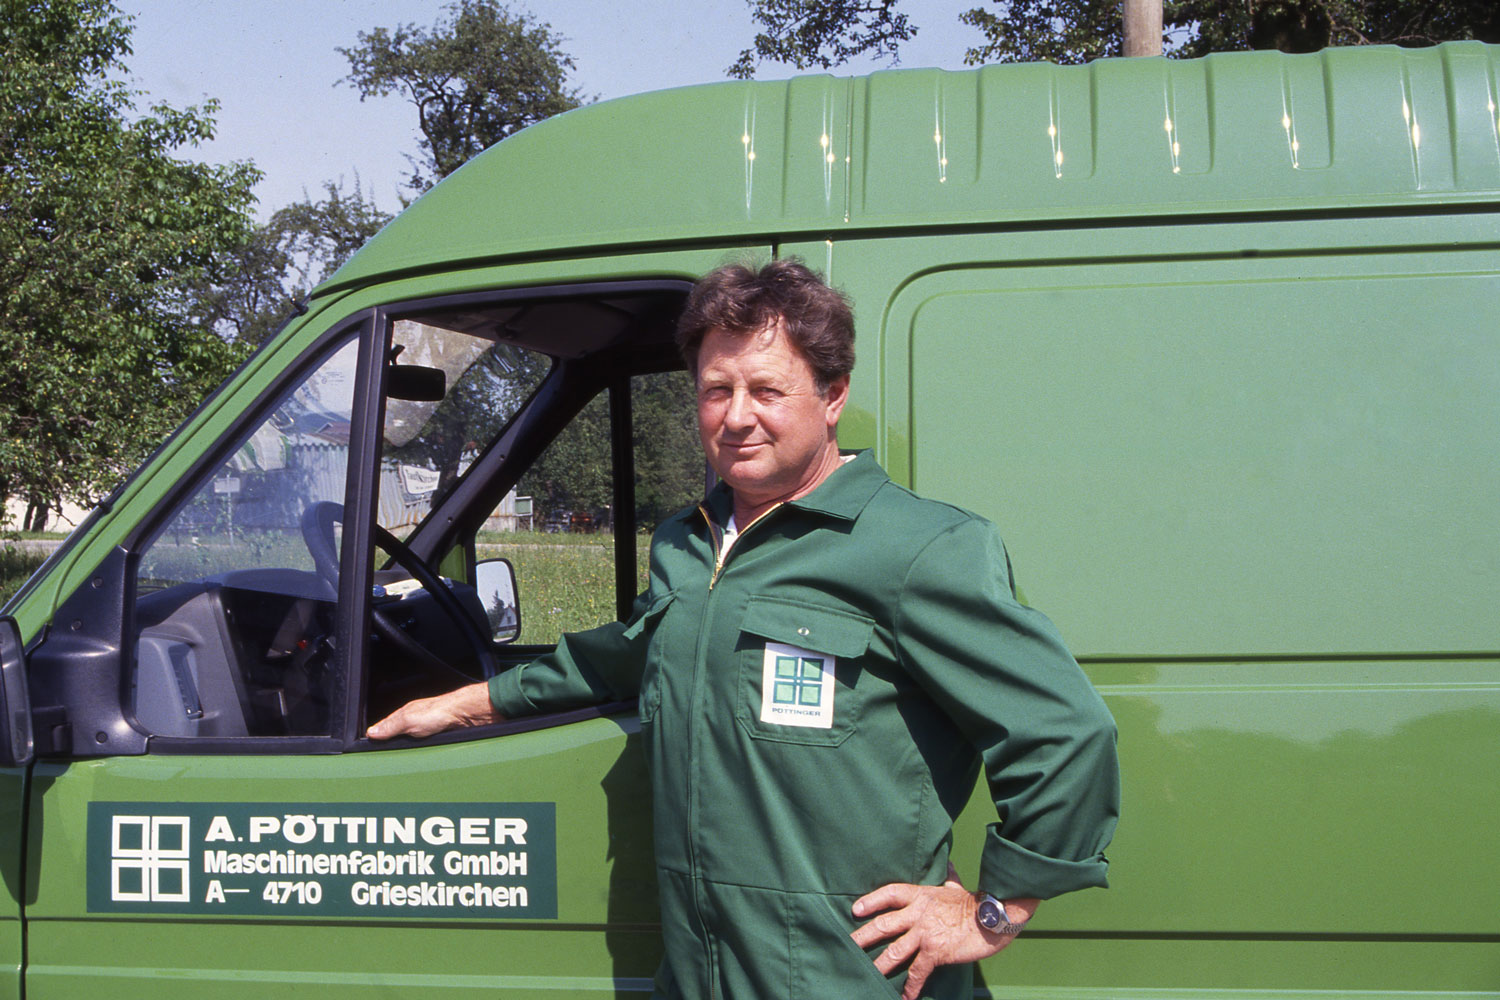 Go on green: PÖTTINGER customer services on the road.